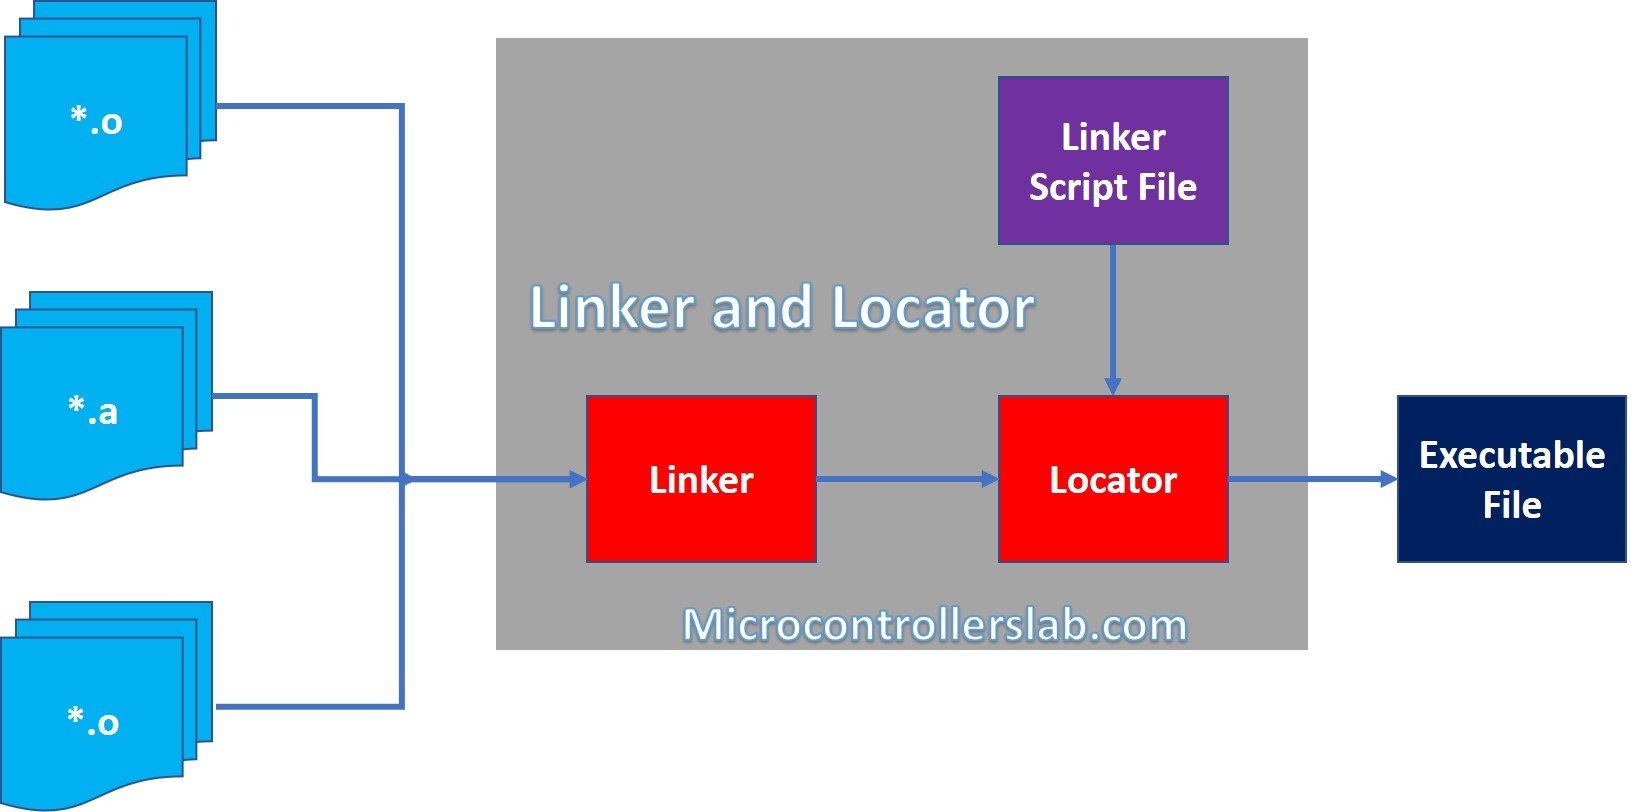 Linker script file in embedded systems